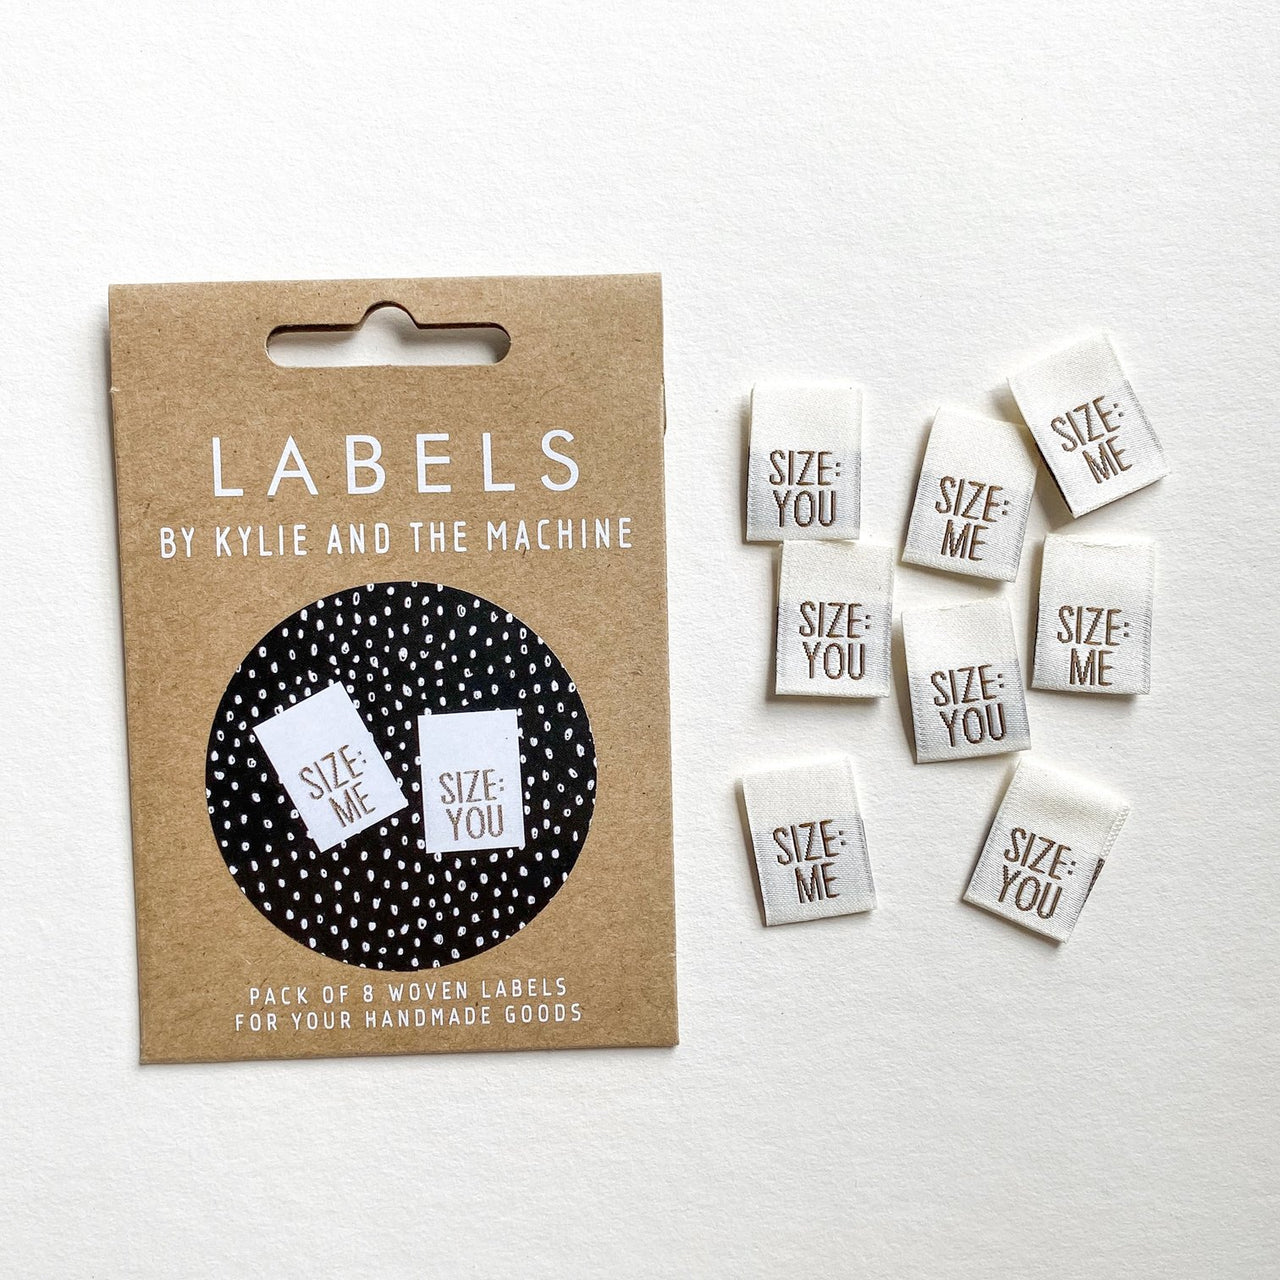 'Size: Me/You' Label 8-Pack